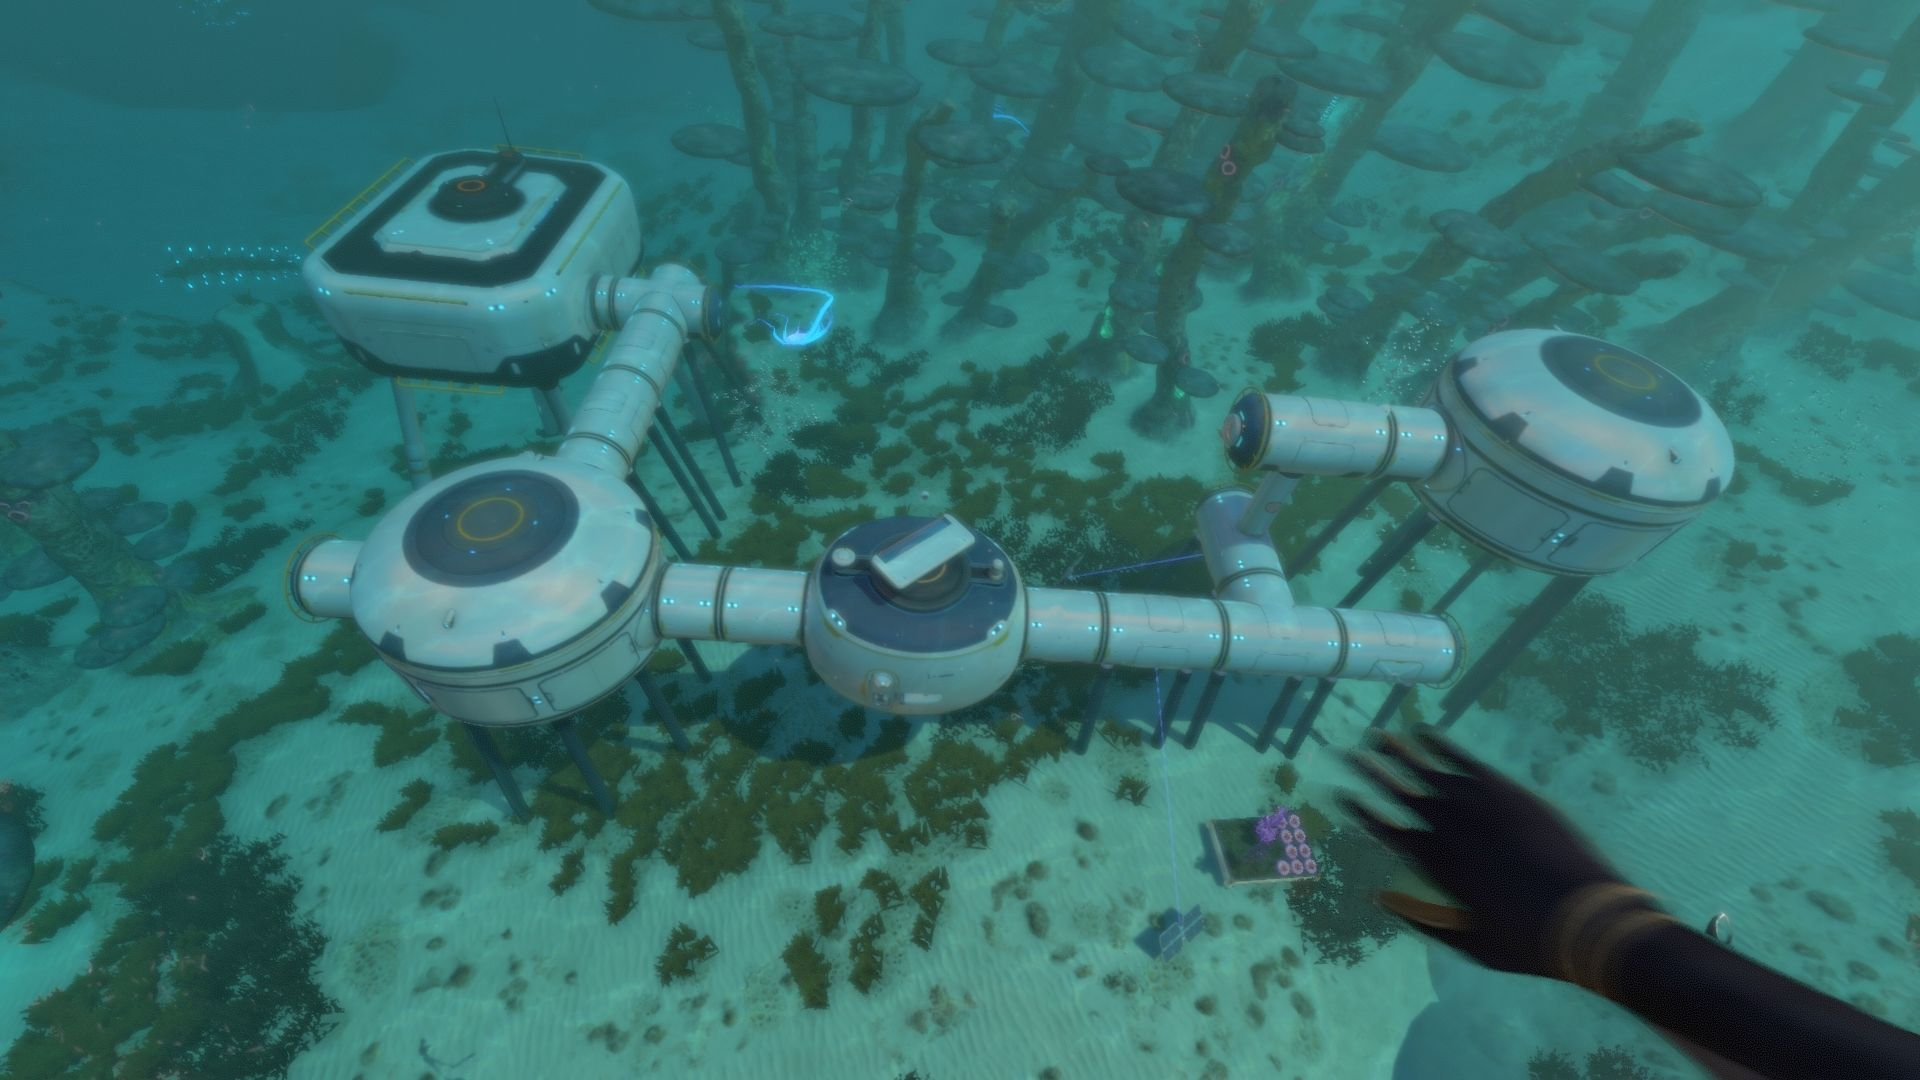 Subnautica Review New Game Network Setup the game to initialize the options based on the. subnautica review new game network